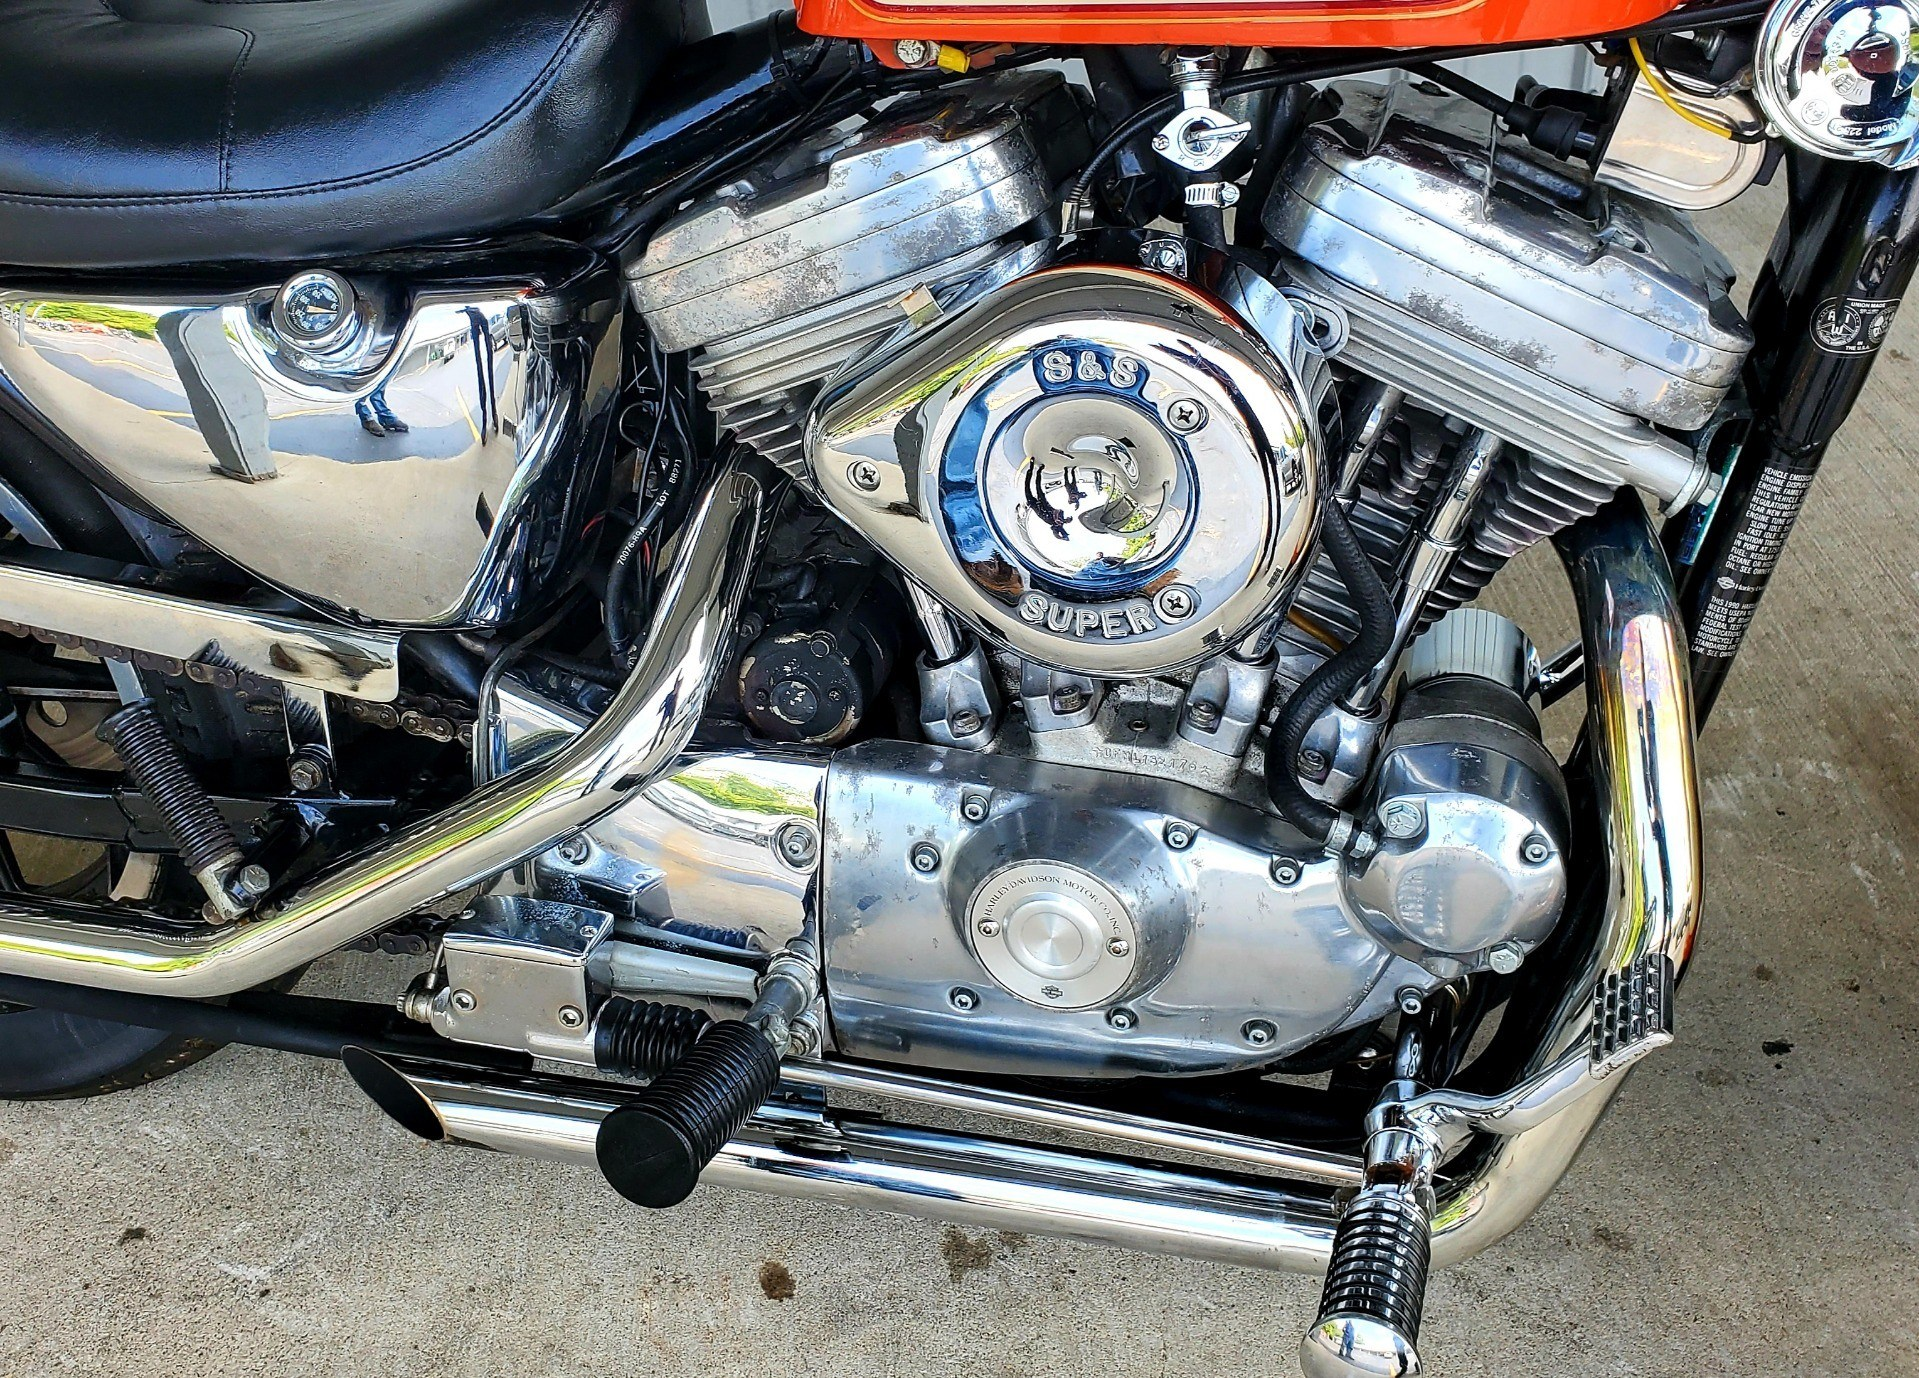 1990 Harley-Davidson 883 DELUXE in Athens, Ohio - Photo 6